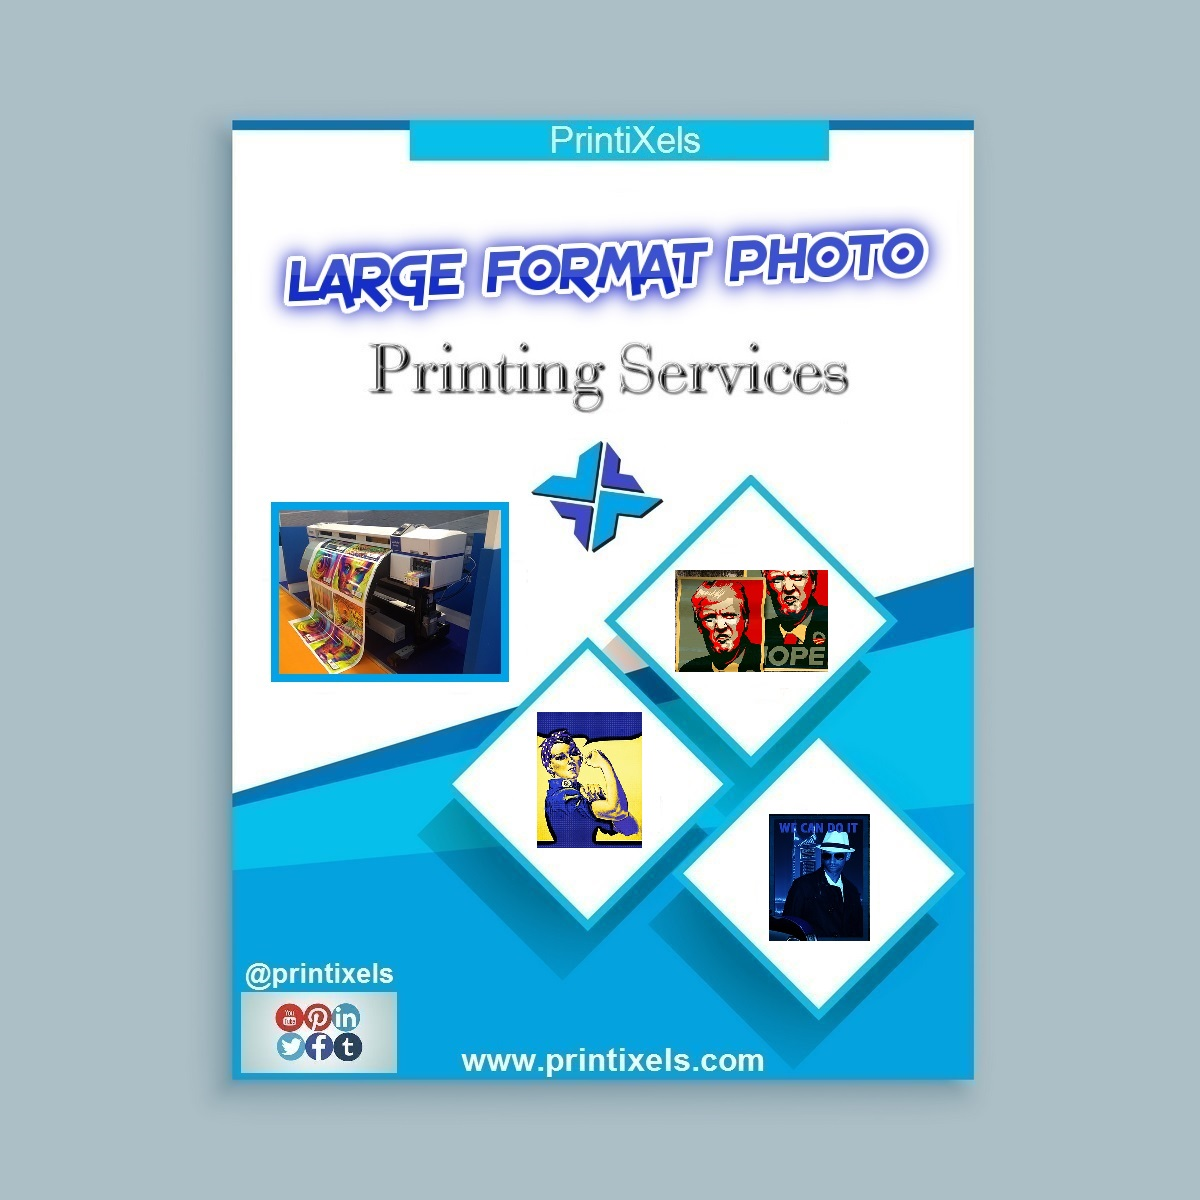 Large Format Photo Printing Services